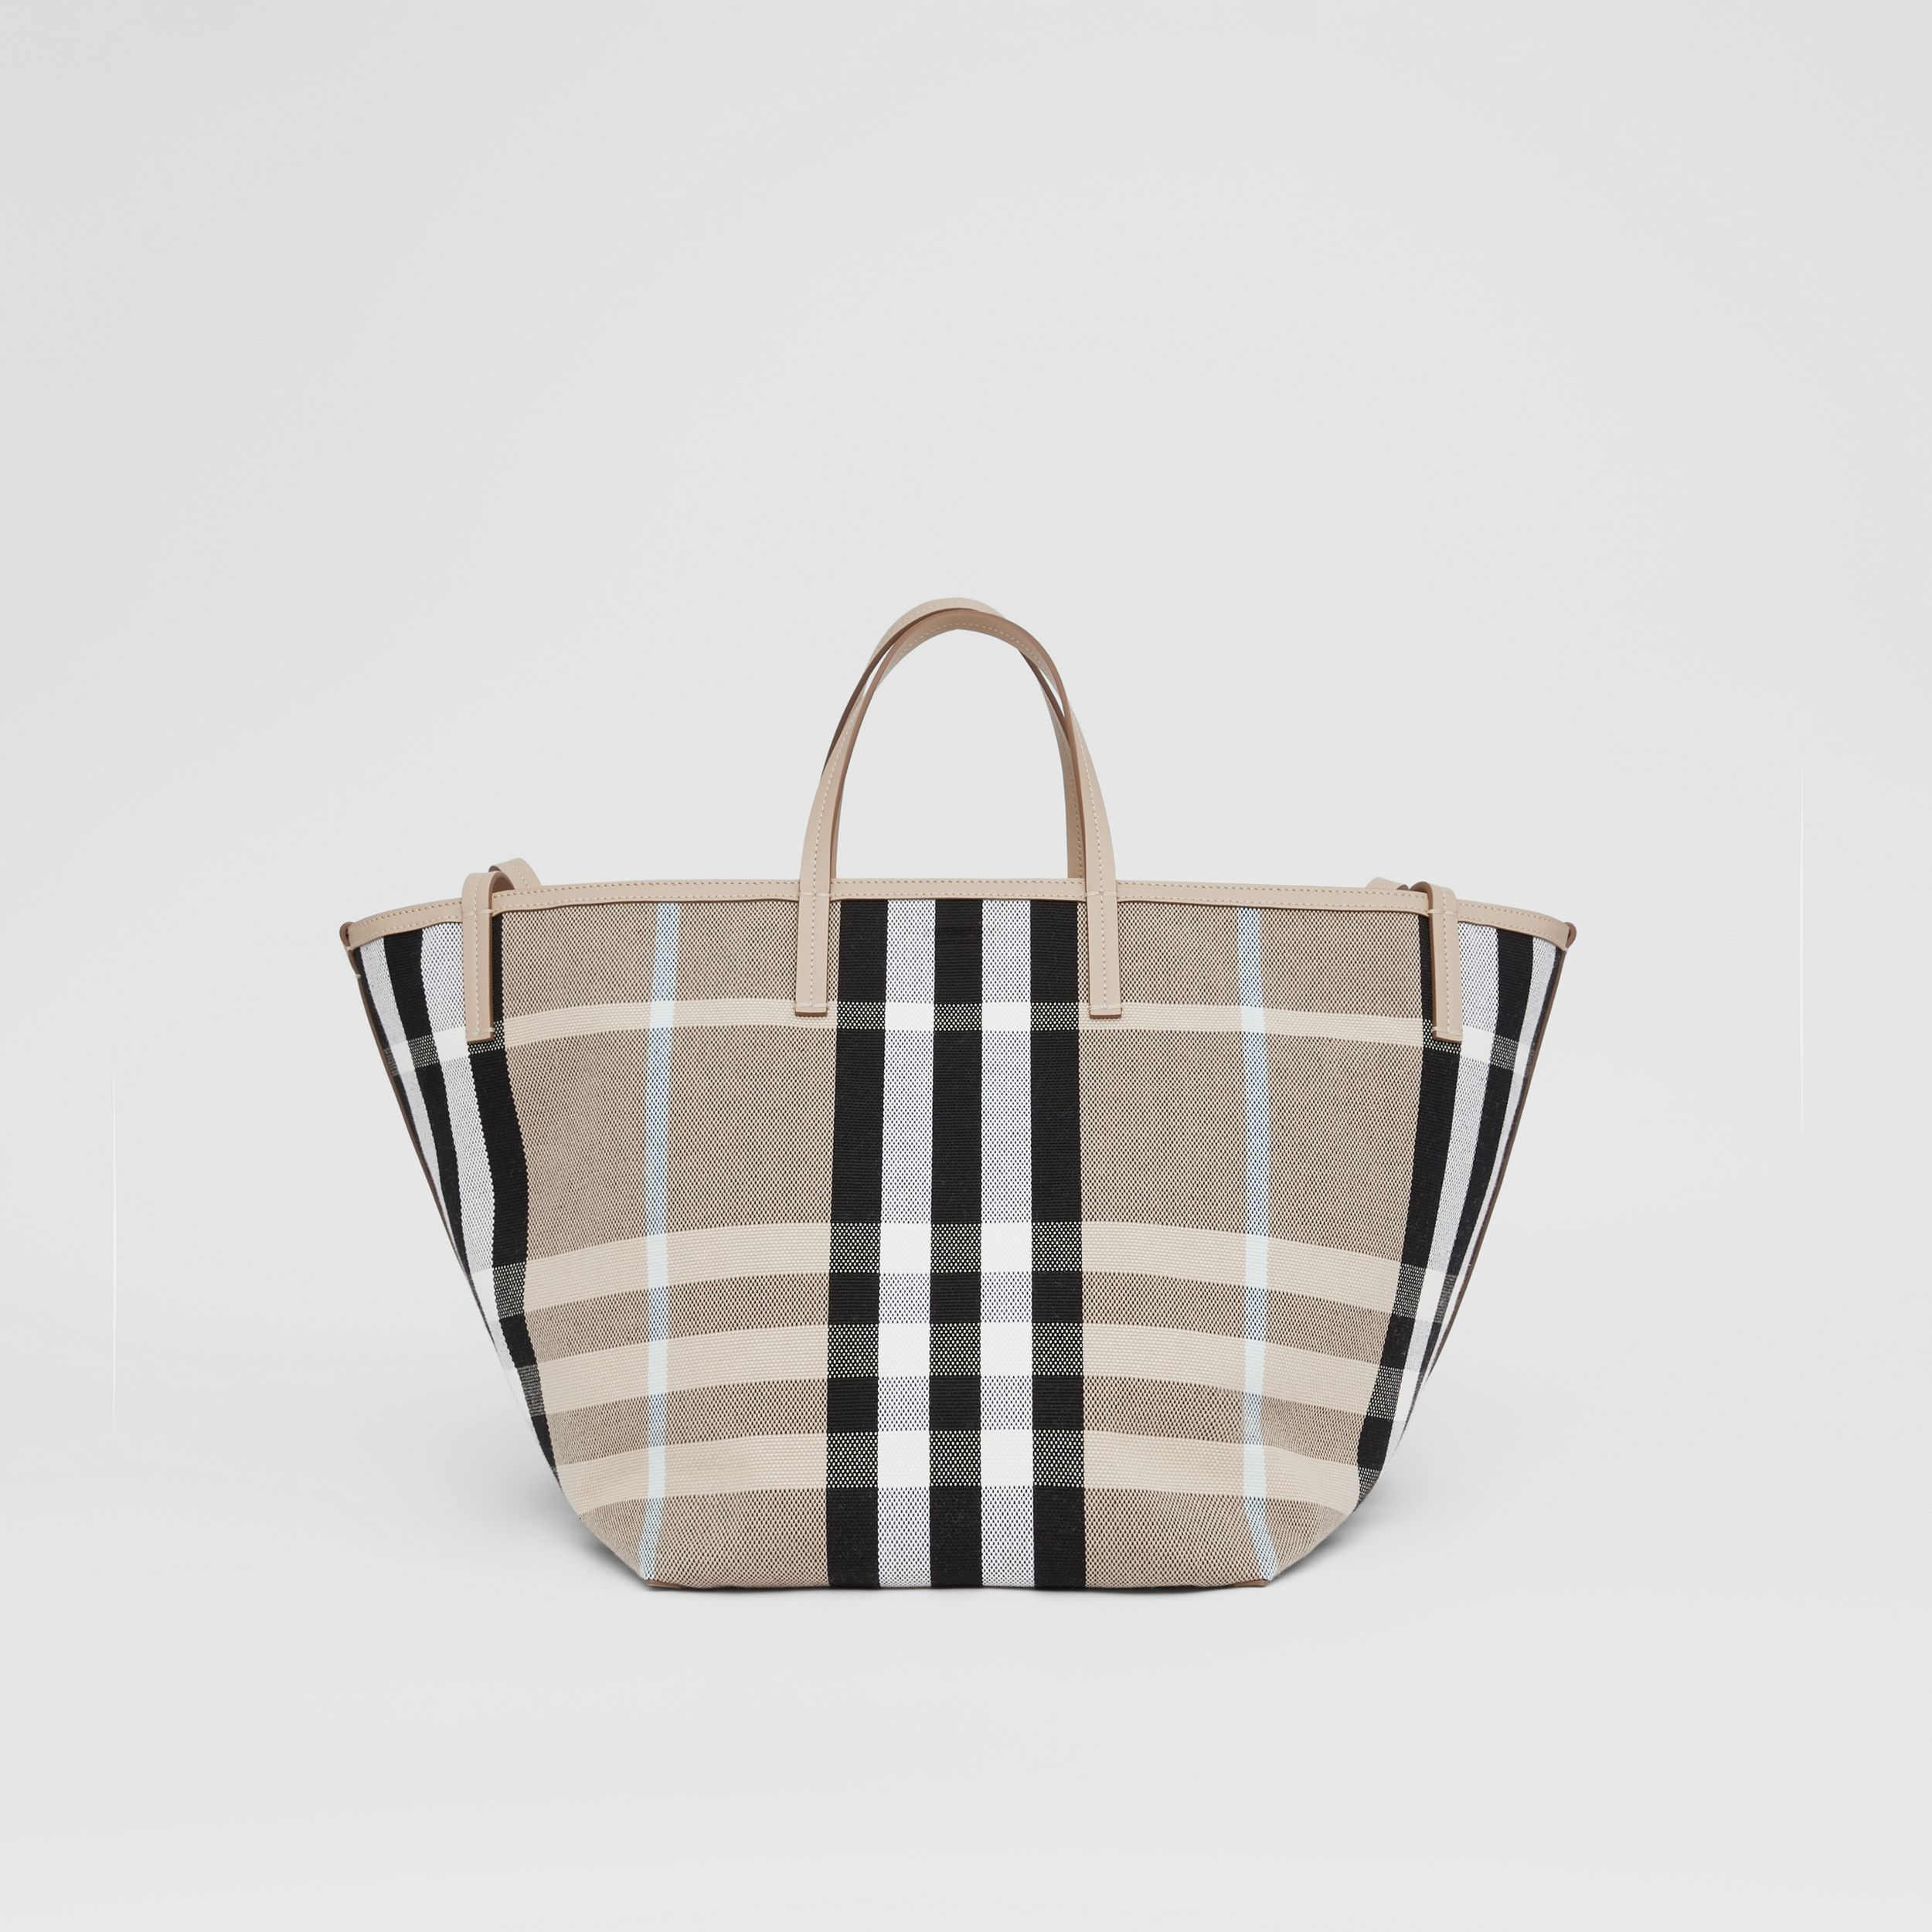 Medium Check Canvas Beach Tote in Dusty Sand/soft Fawn - Women | Burberry - 1